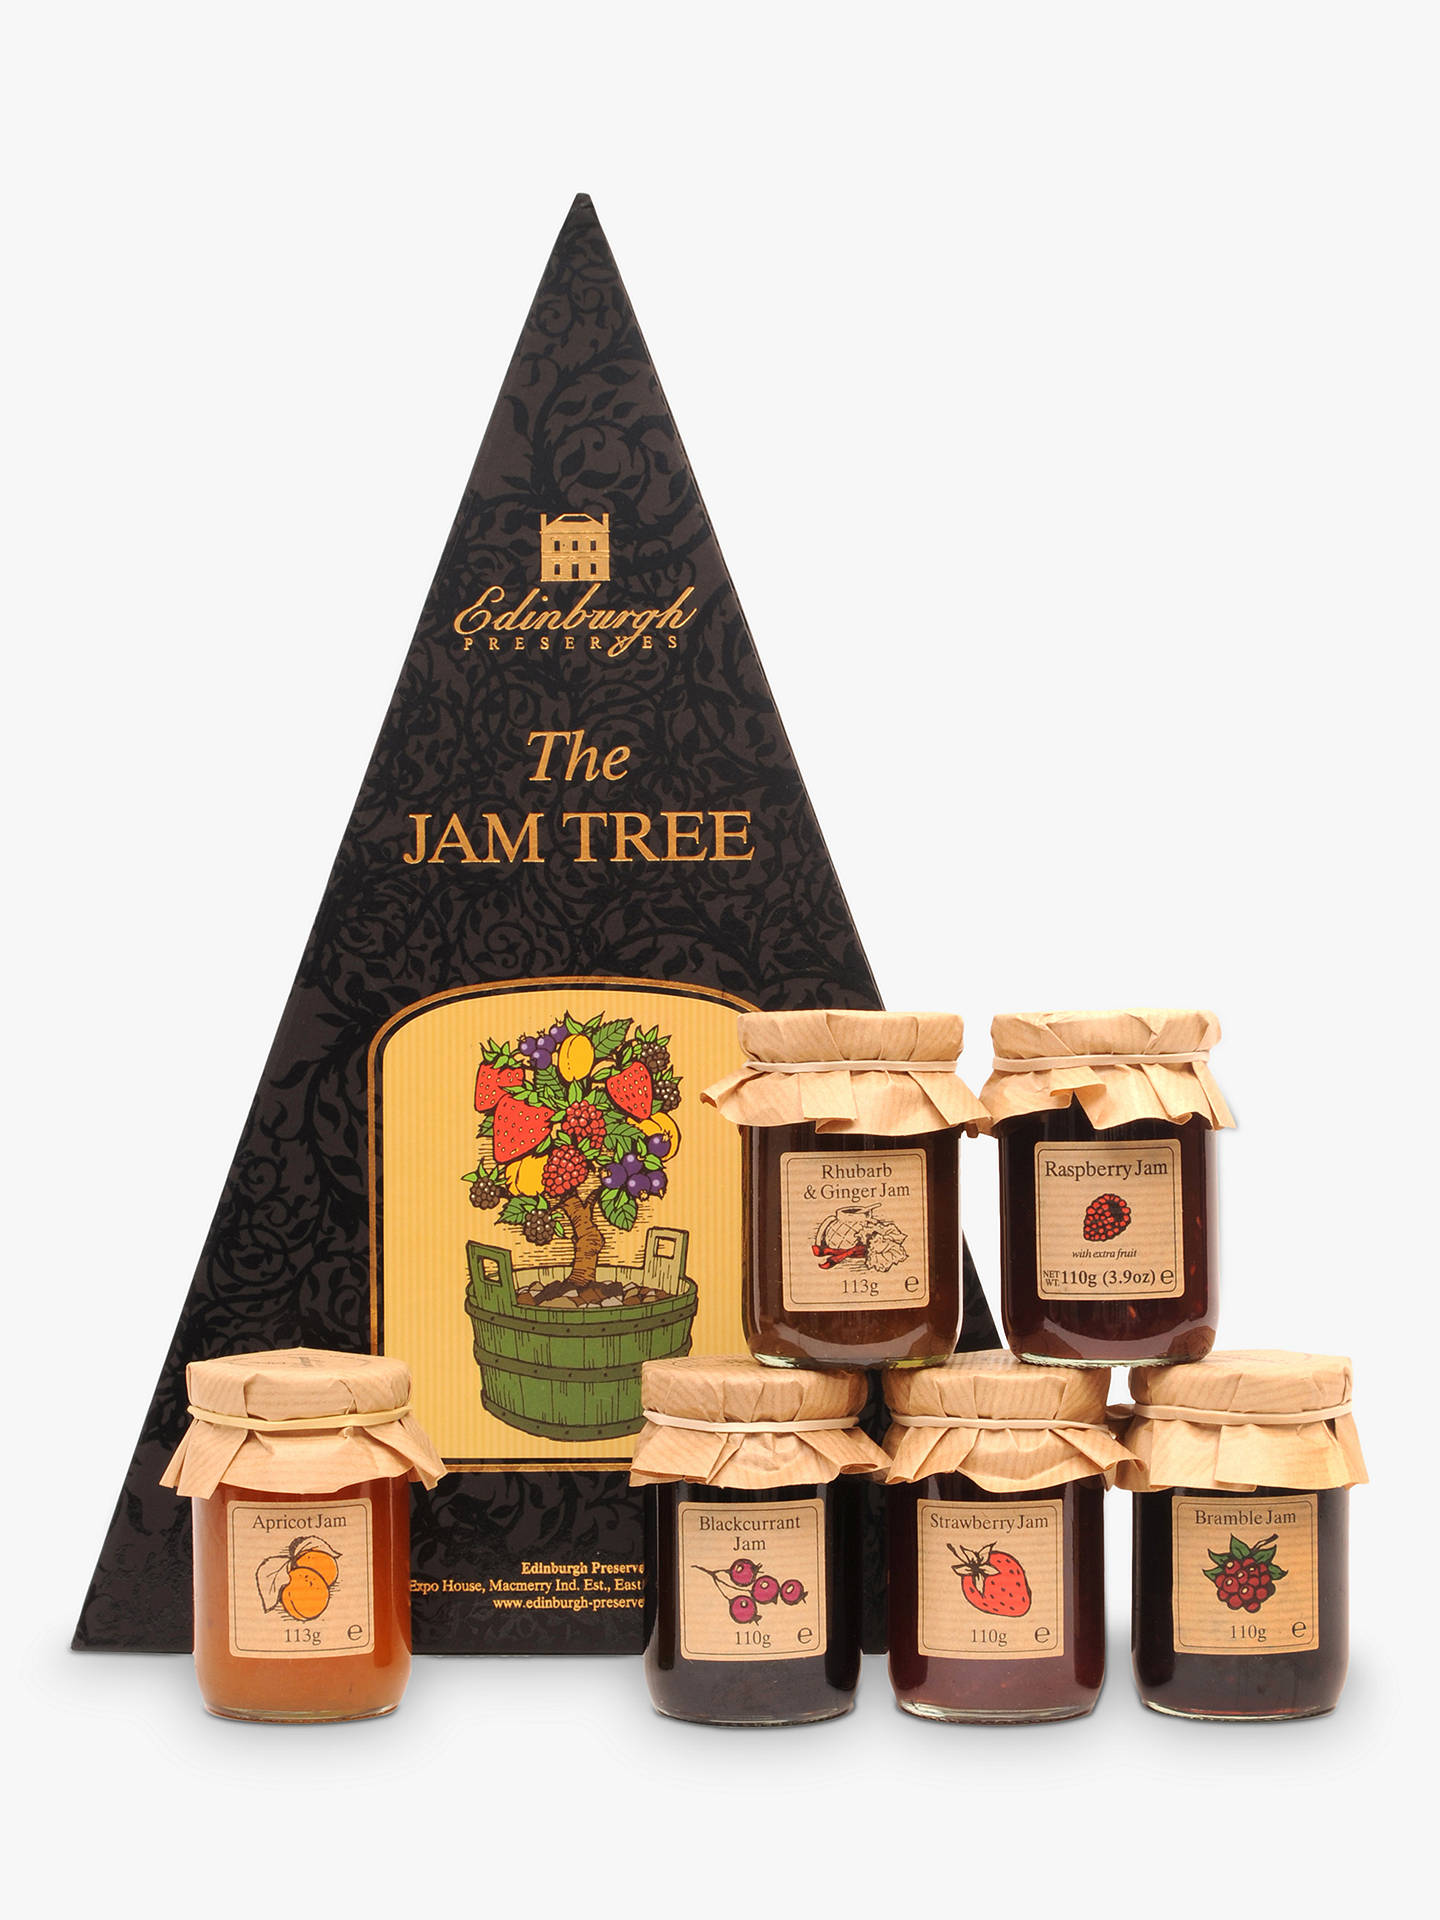 Edinburgh Preserves The Jam Tree Box 660g